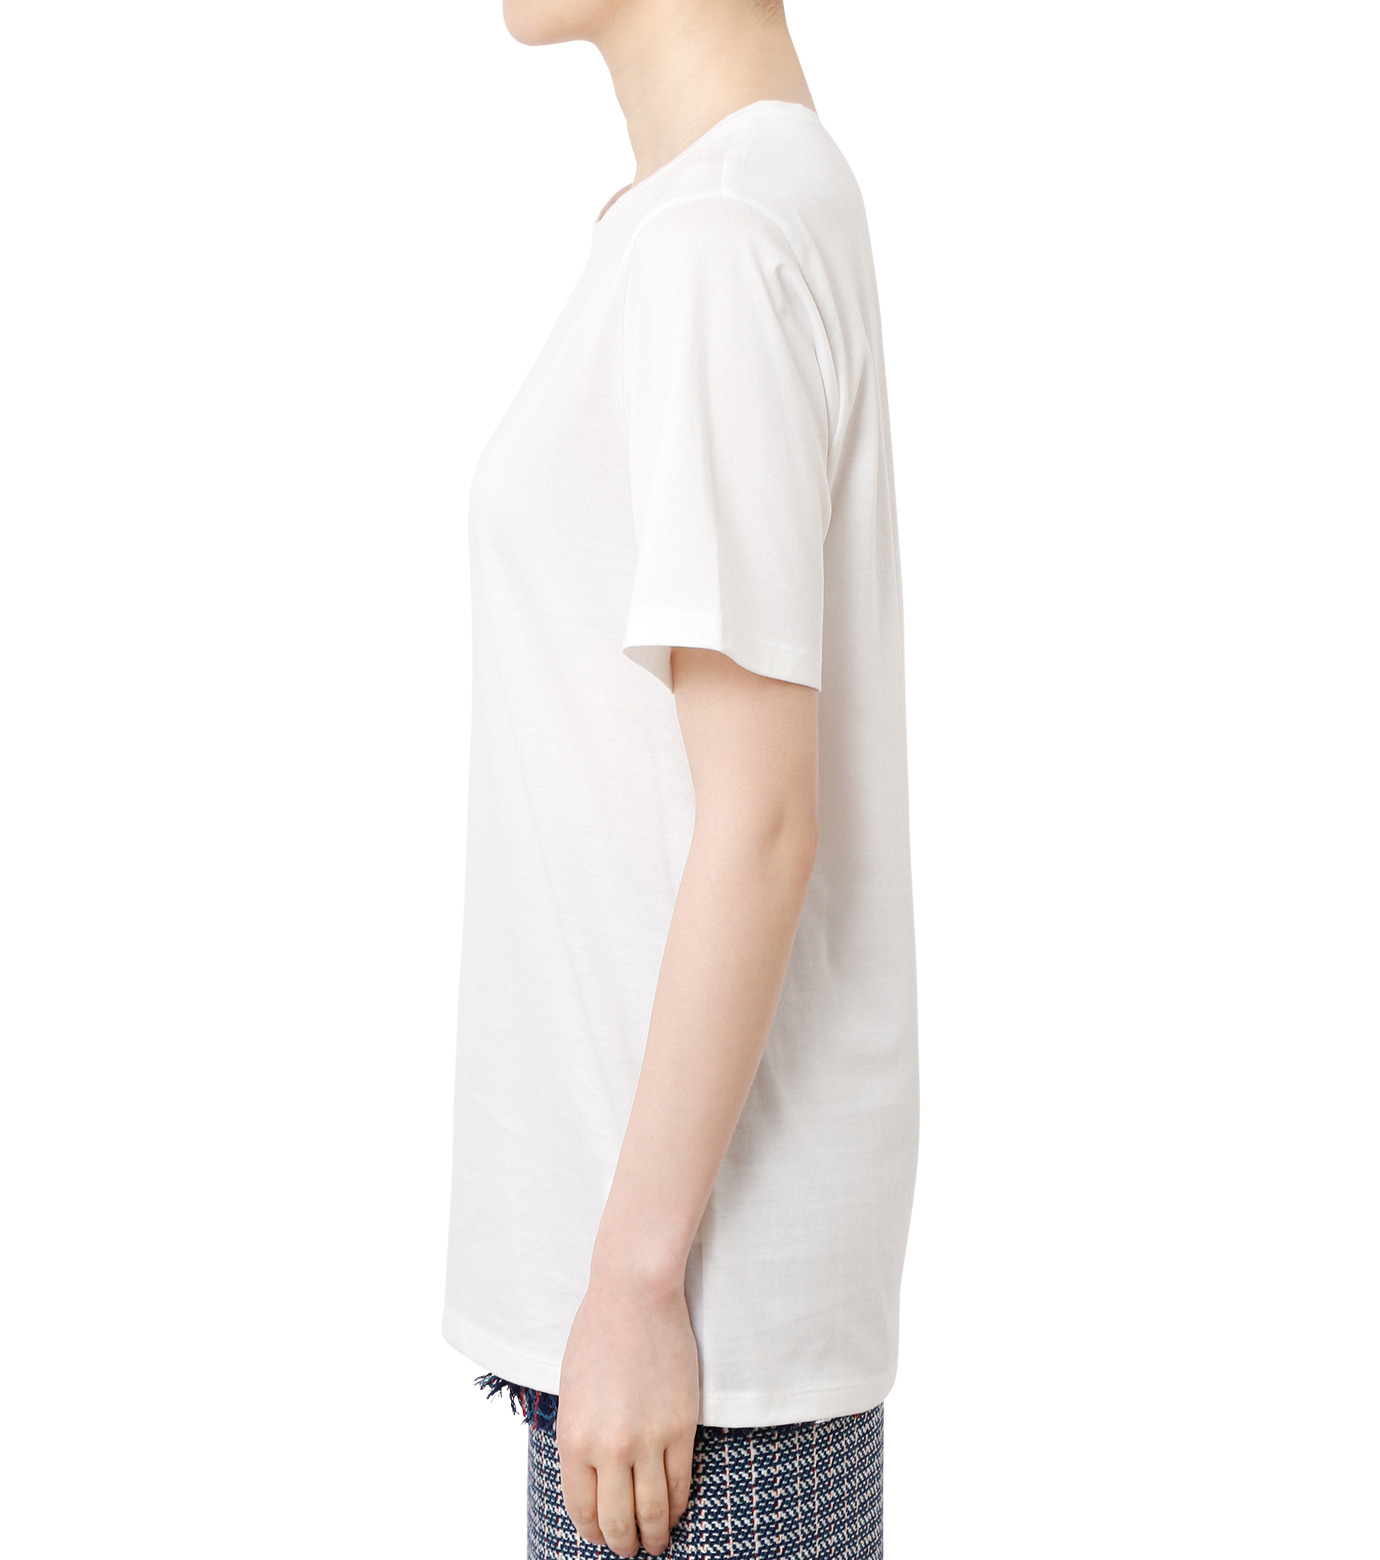 LE CIEL BLEU(ルシェルブルー)のベーシックTEE-WHITE(カットソー/cut and sewn)-18A62001 拡大詳細画像2